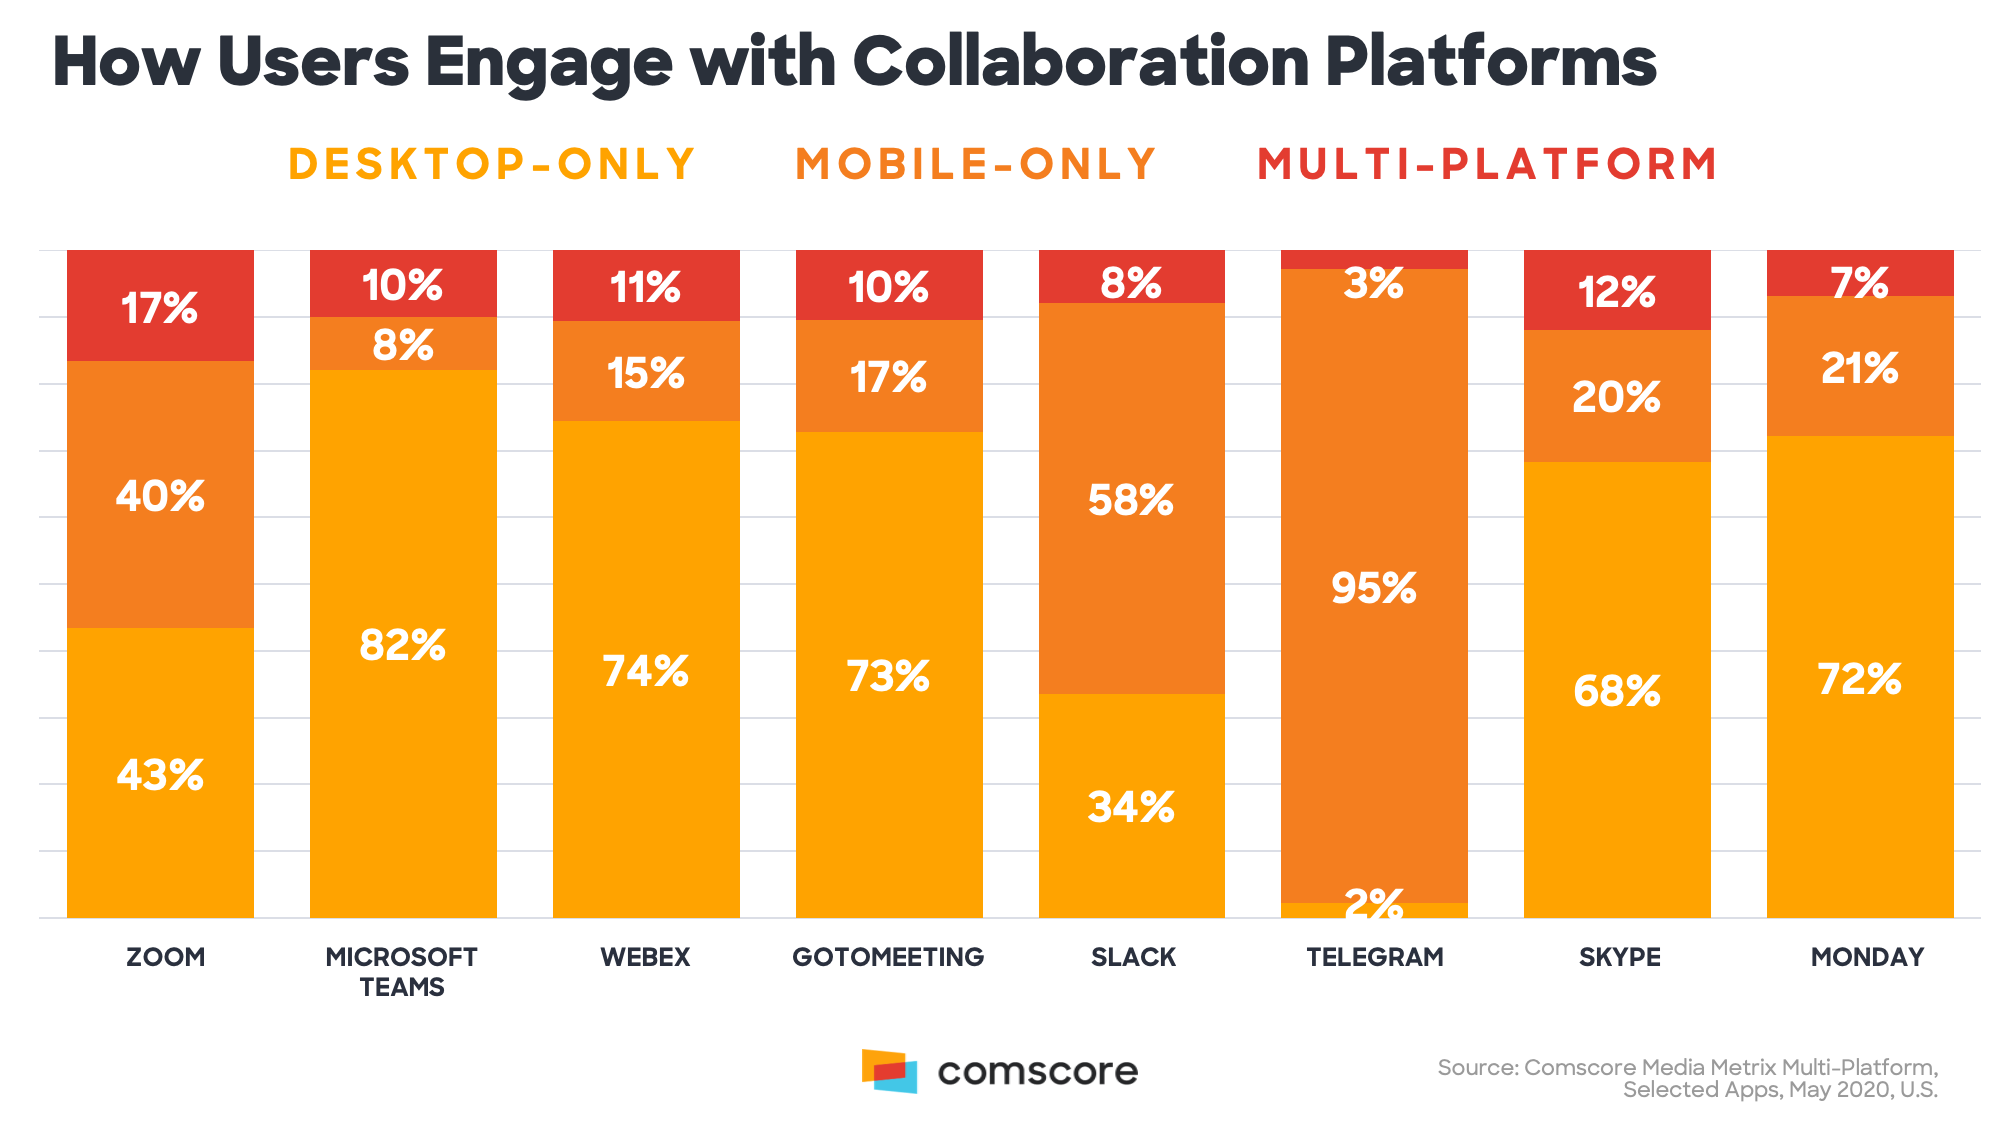 How Users Engage with Collaboration Platforms